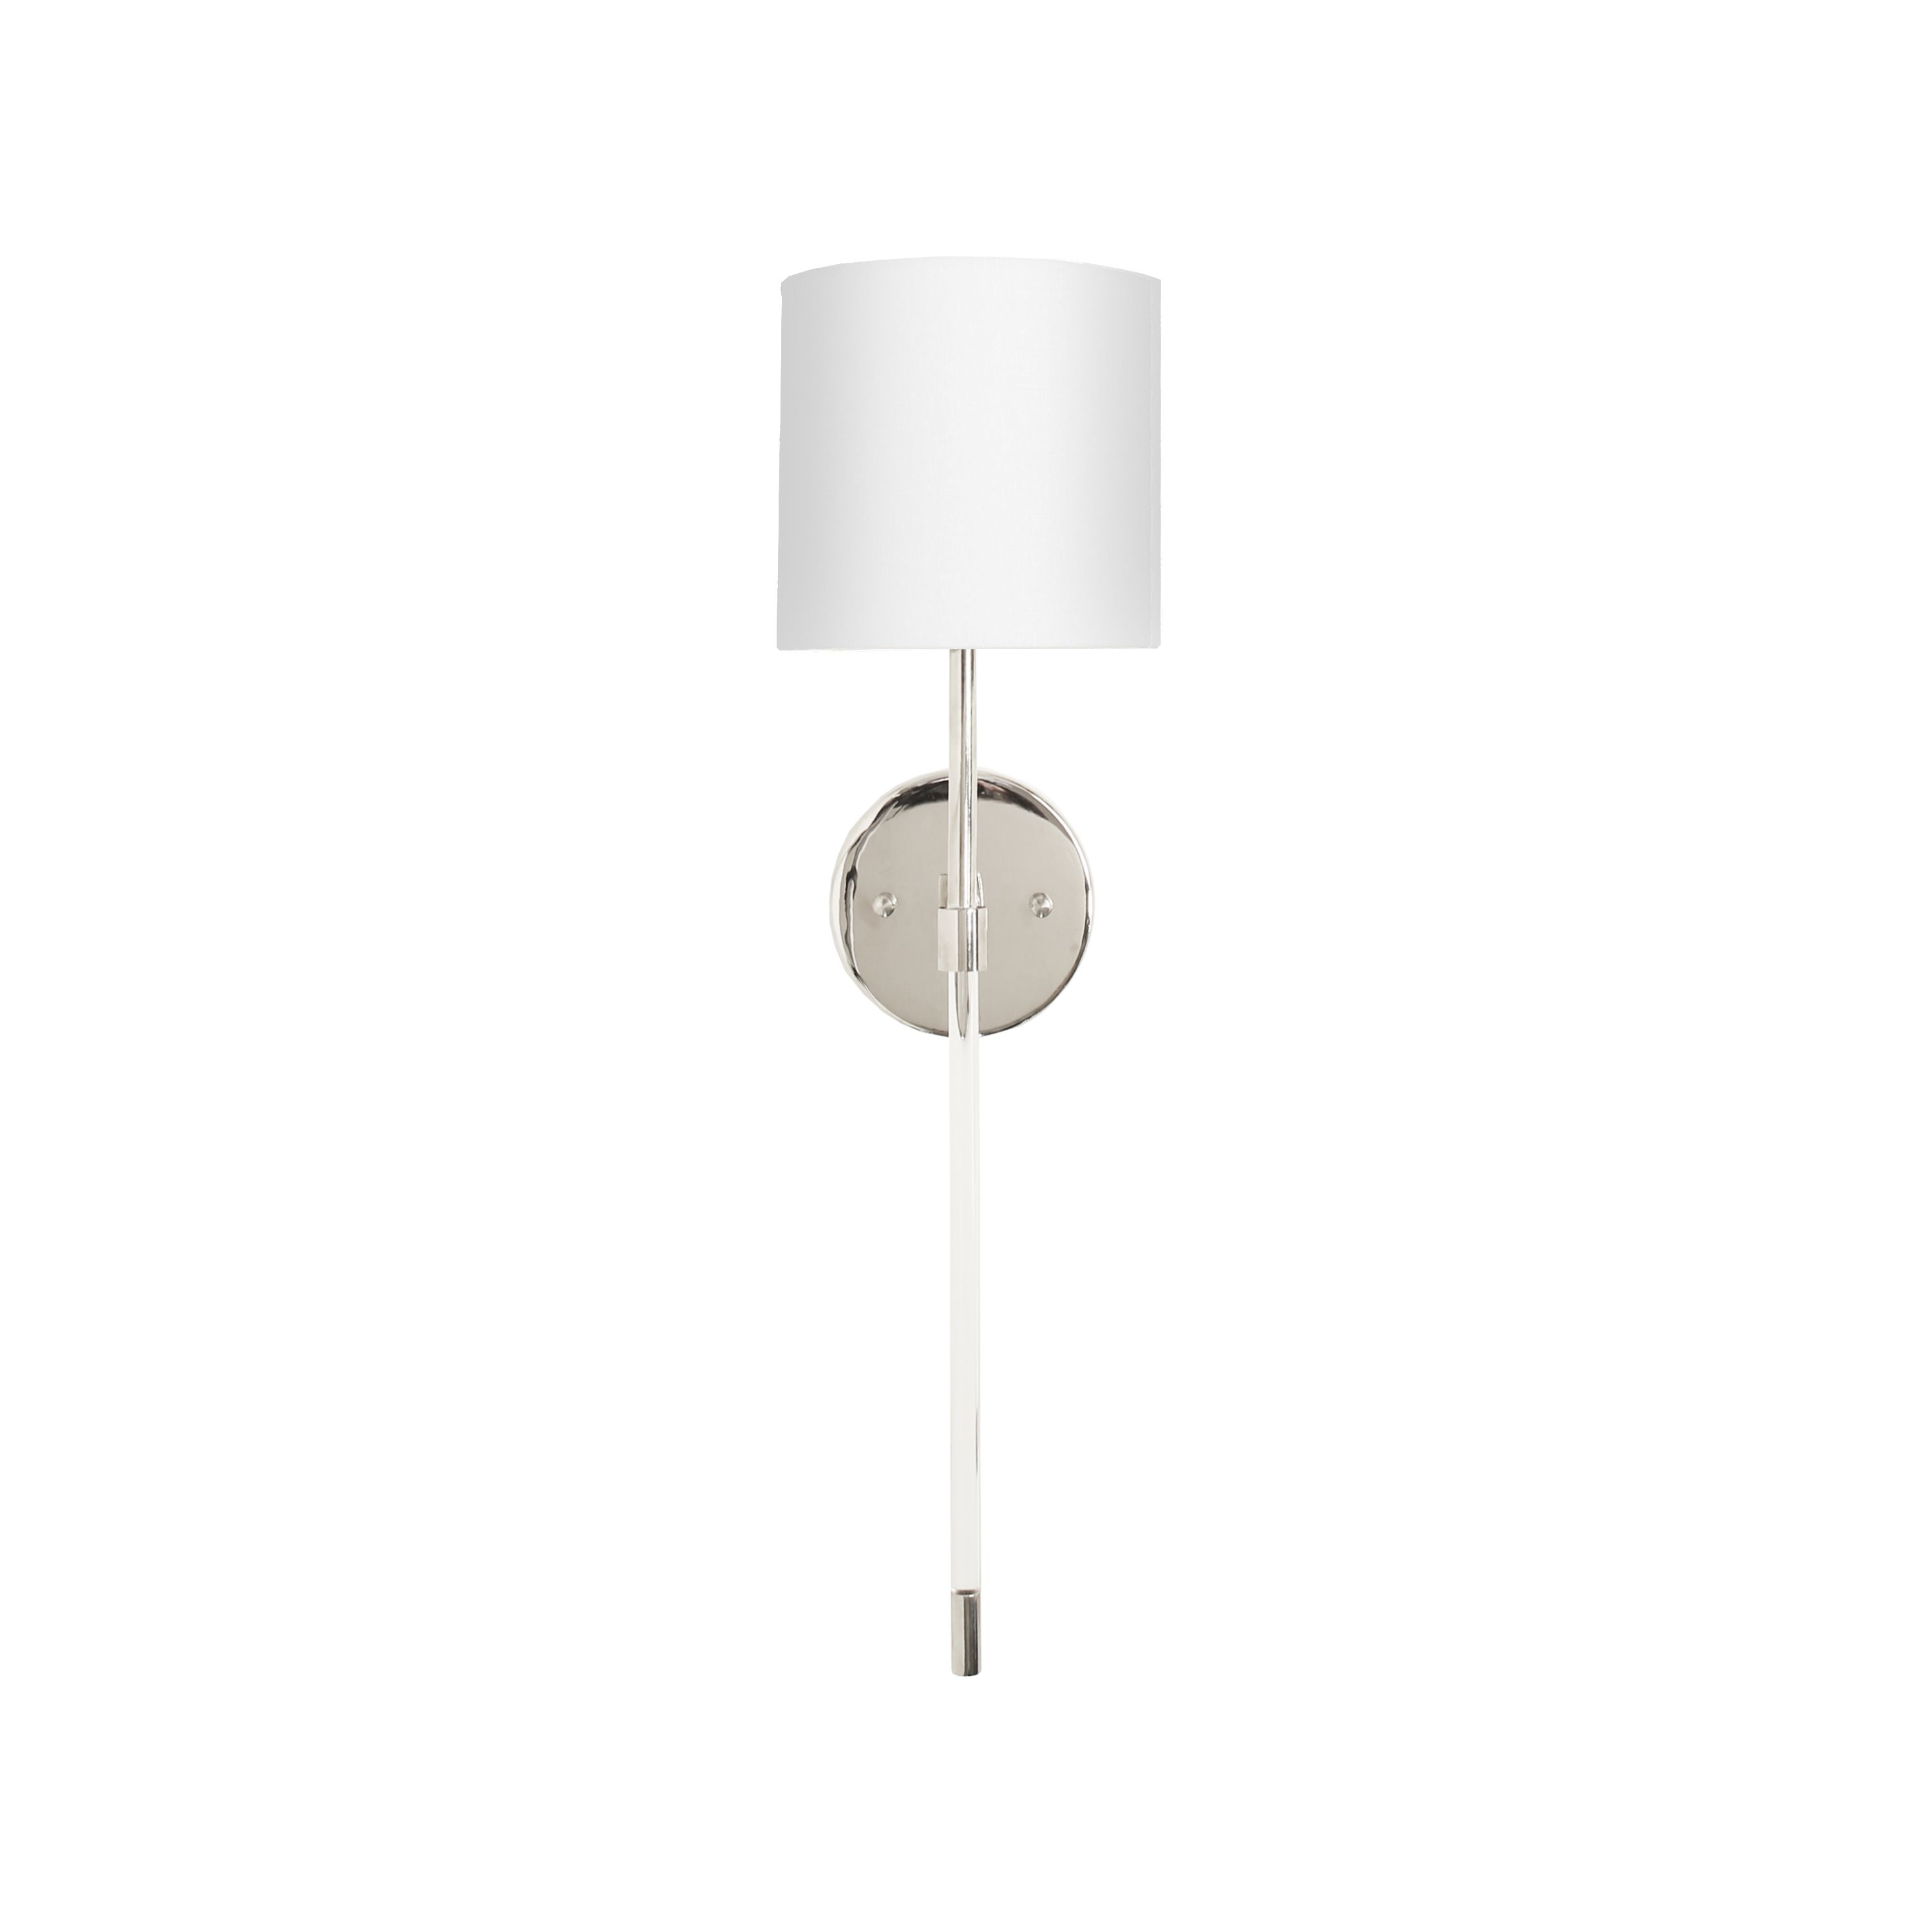 Acrylic Sconce with White Linen Shade in Nickel